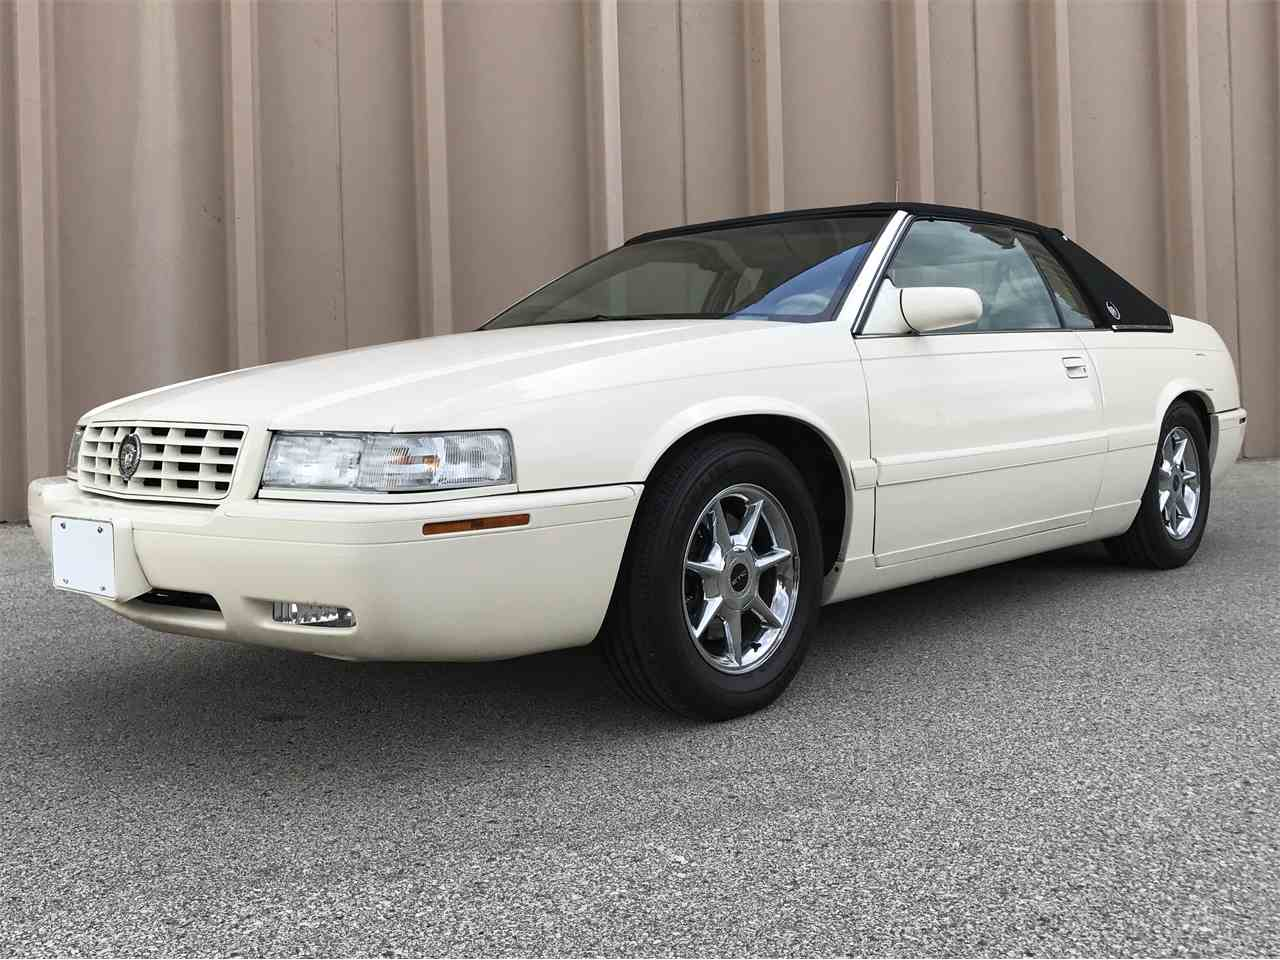 Worksheet. Classic Cadillac Eldorado for Sale on ClassicCarscom  221 Available